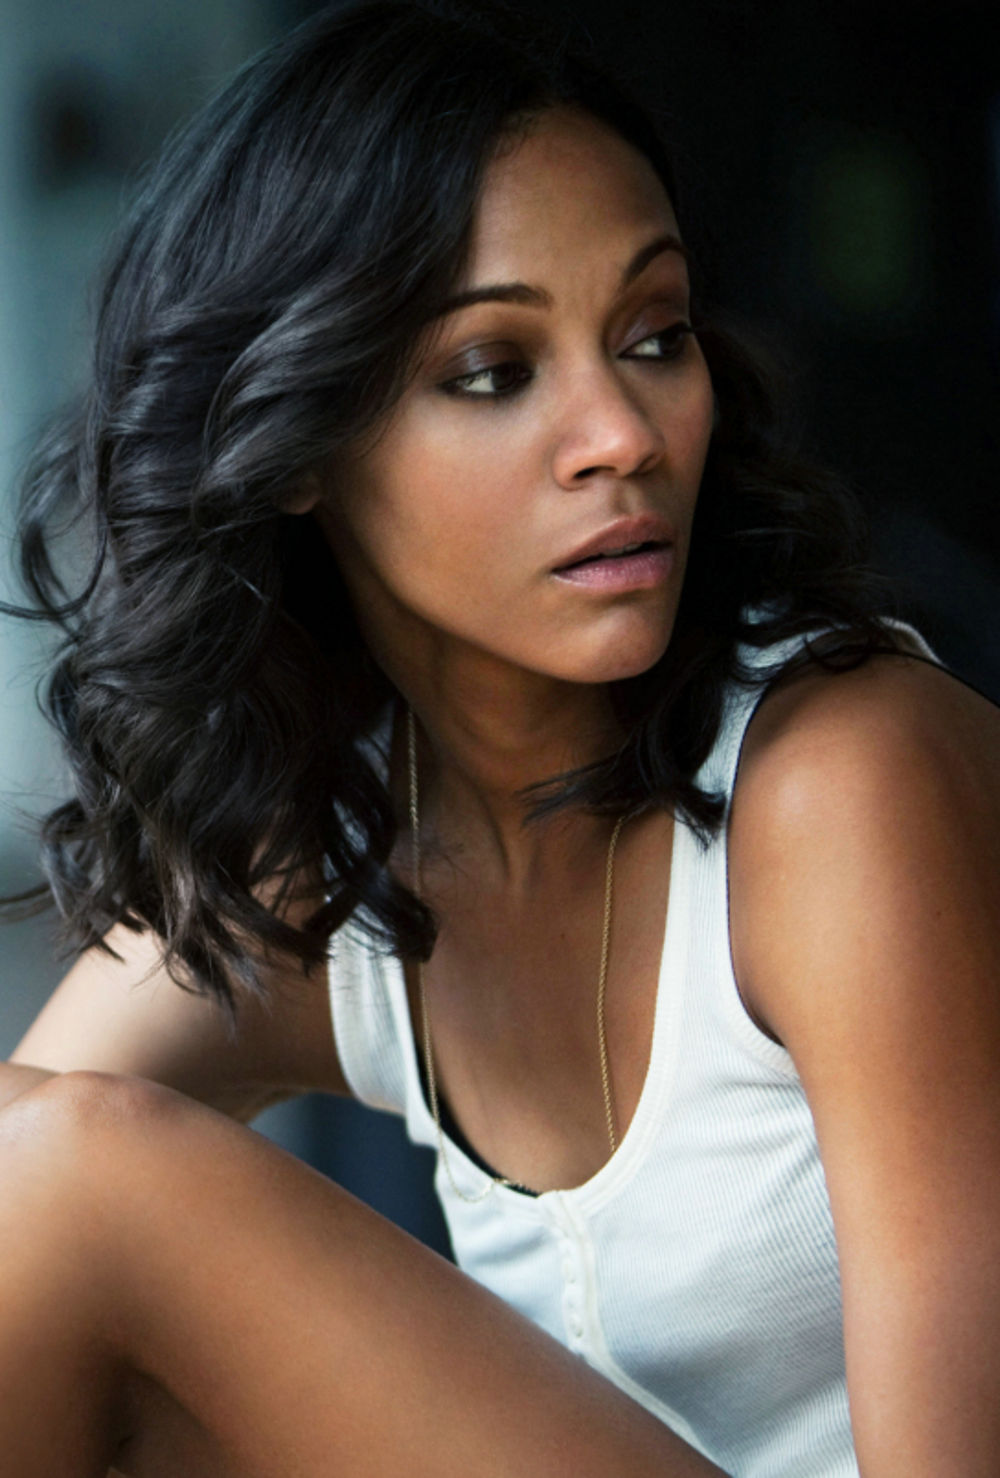 Zoe Saldana is a model that appeared in Drake Nice For What